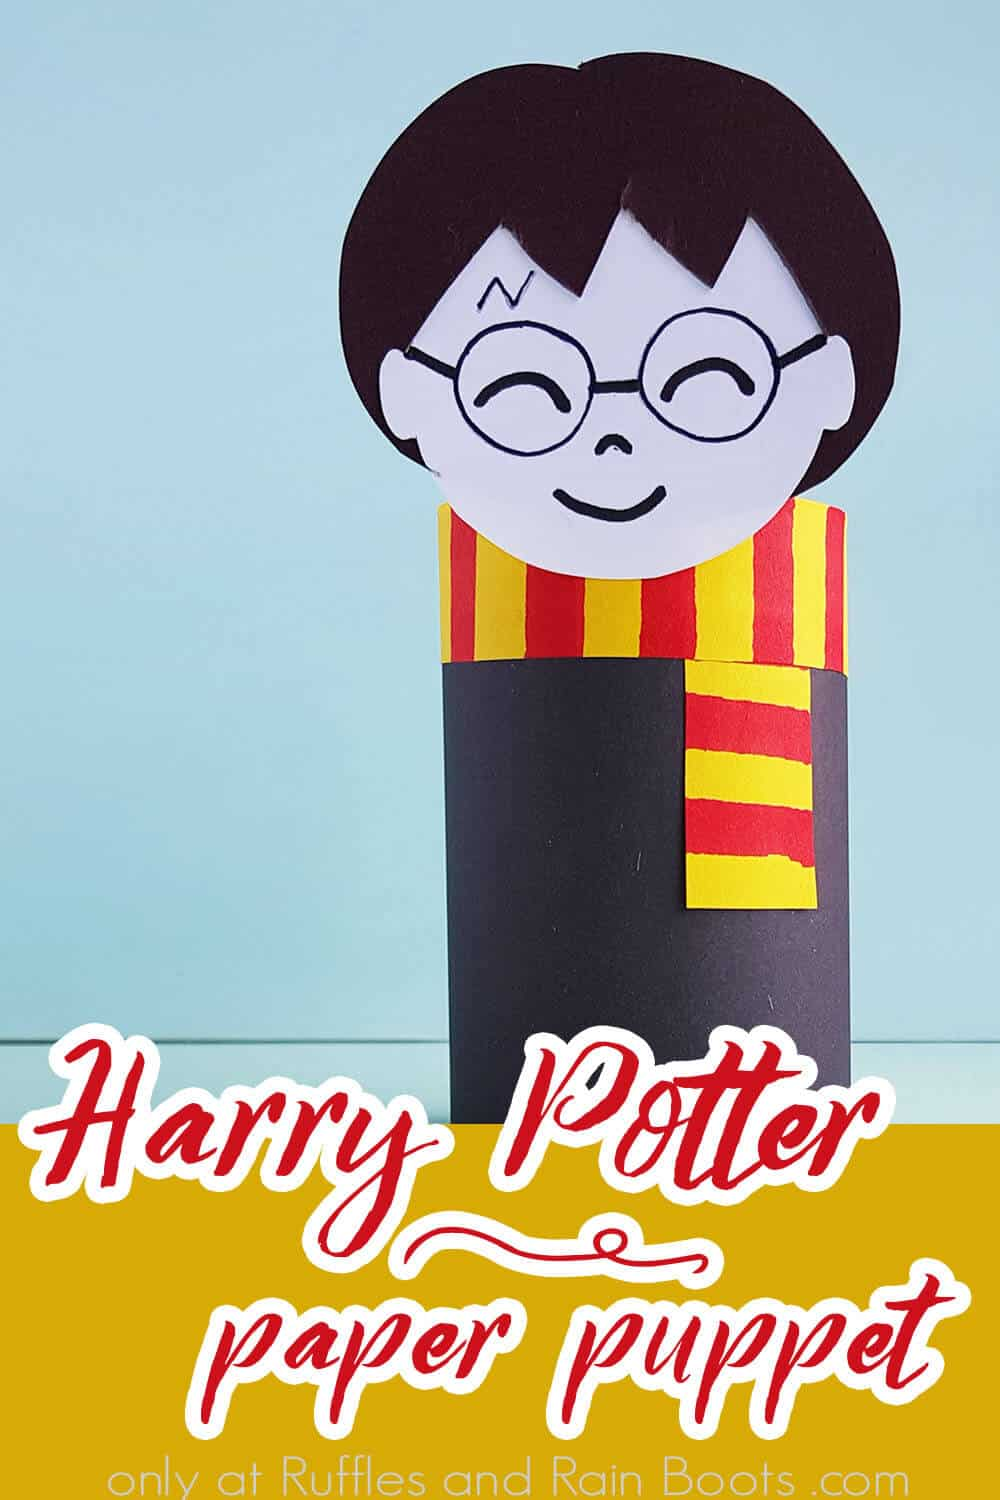 easy paper roll craft for harry potter with text which reads harry potter paper puppet